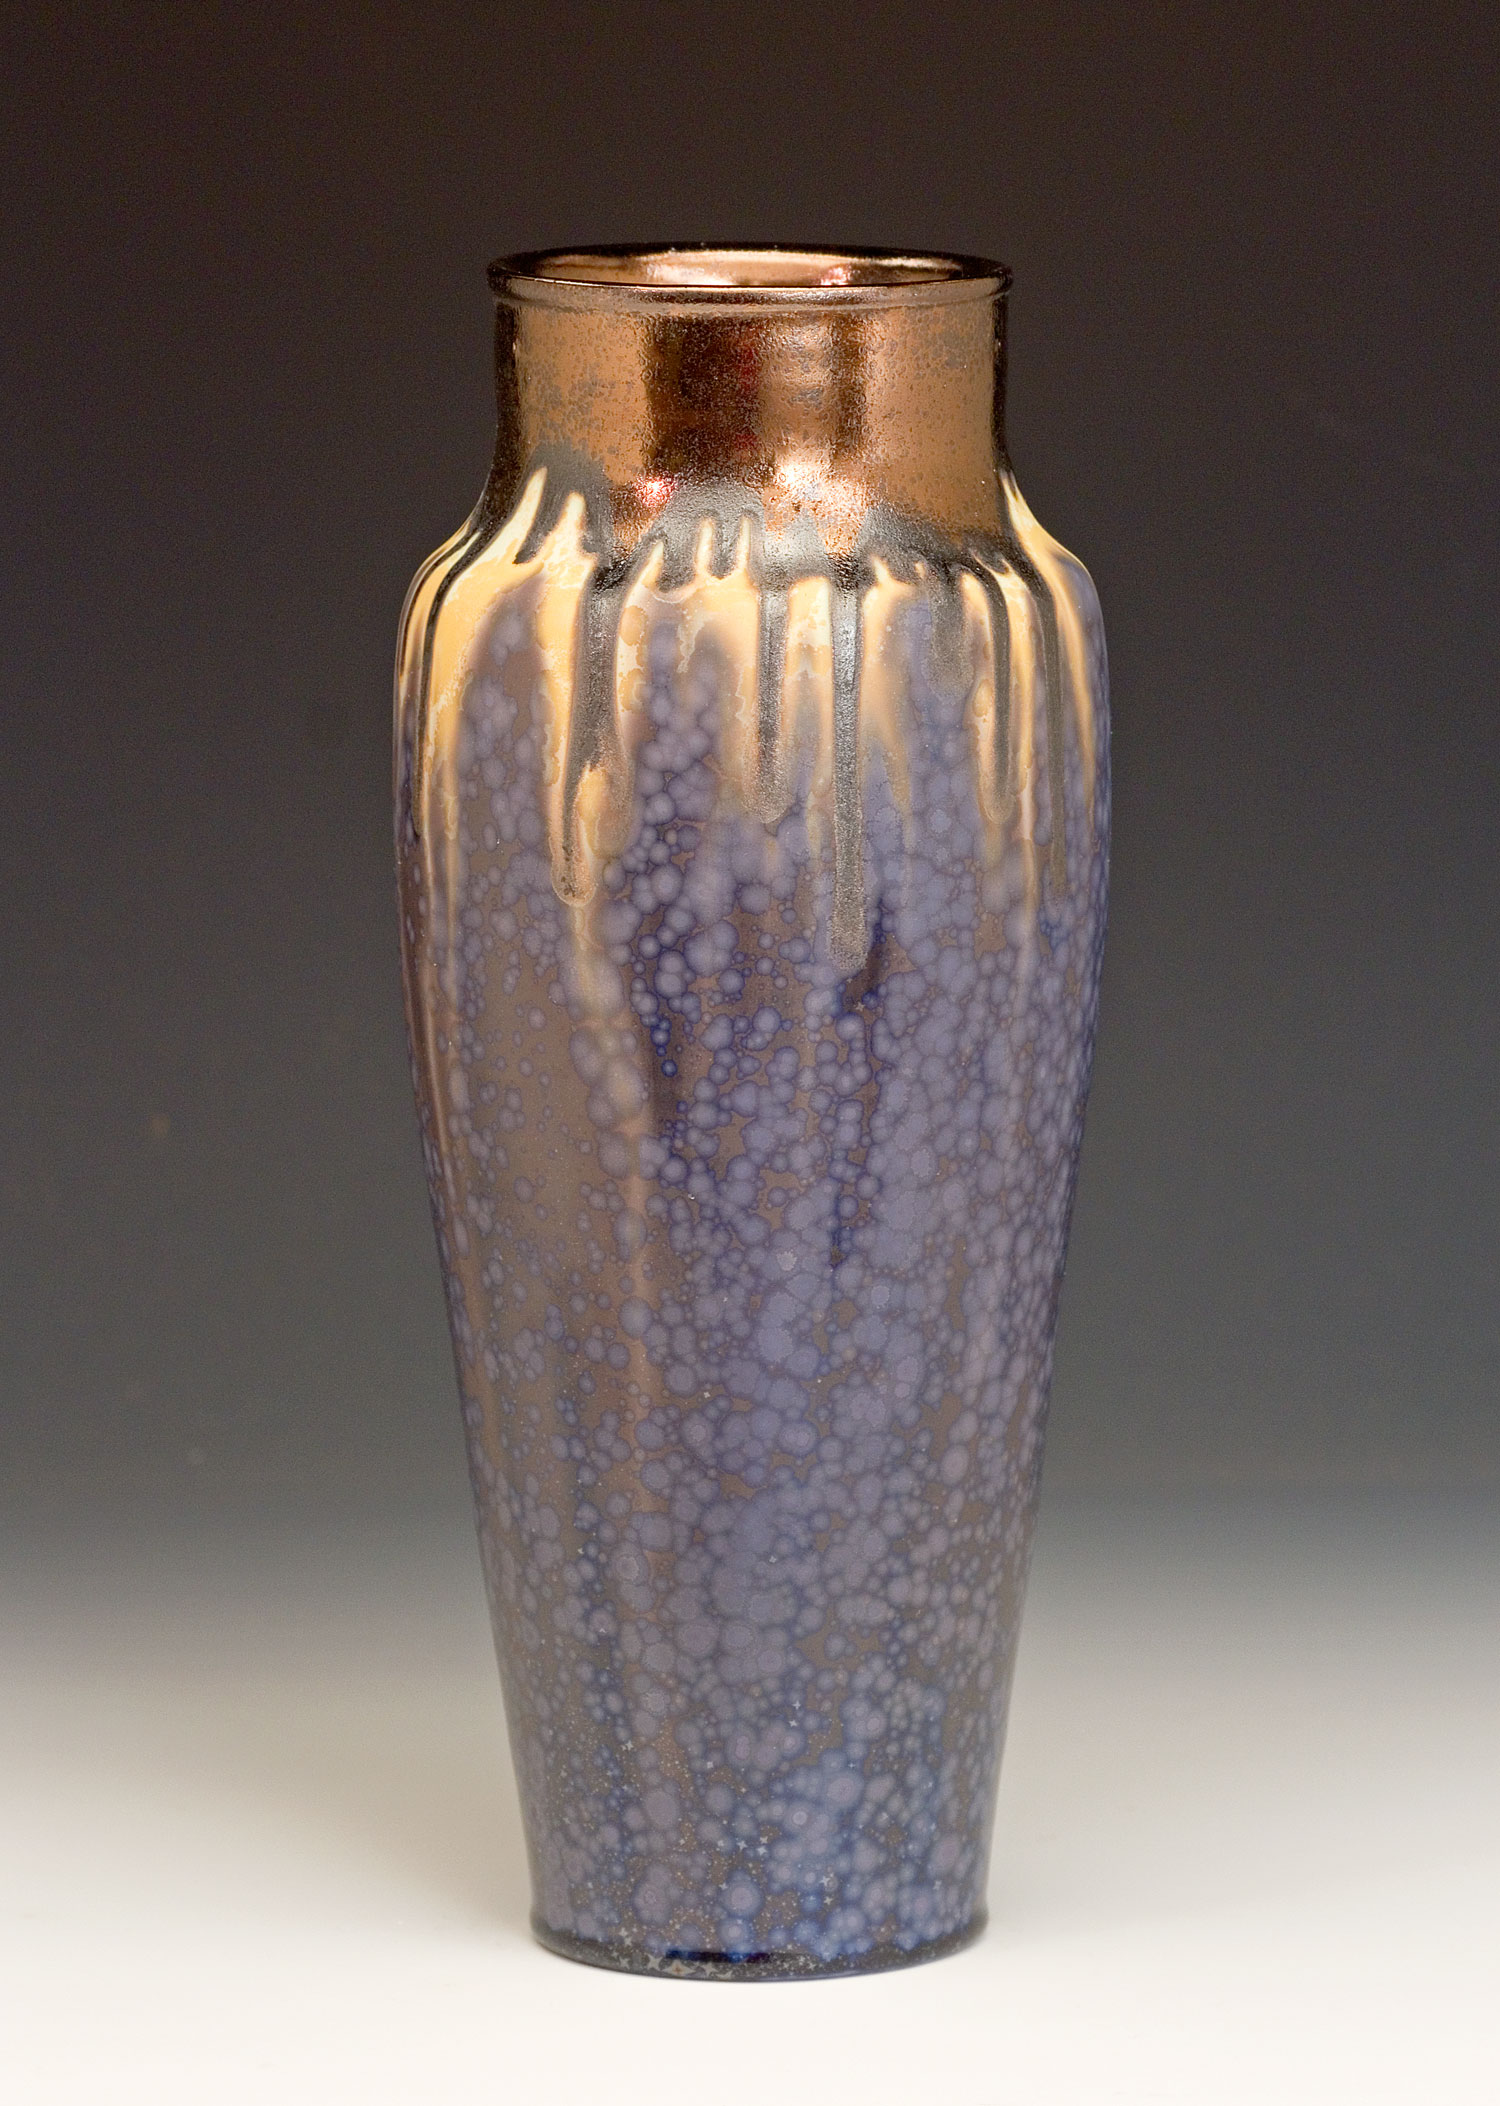 Art-Pottery-Crystalline-Vase-Bruce-Gholson-Seagrove-North-Carolina.jpg